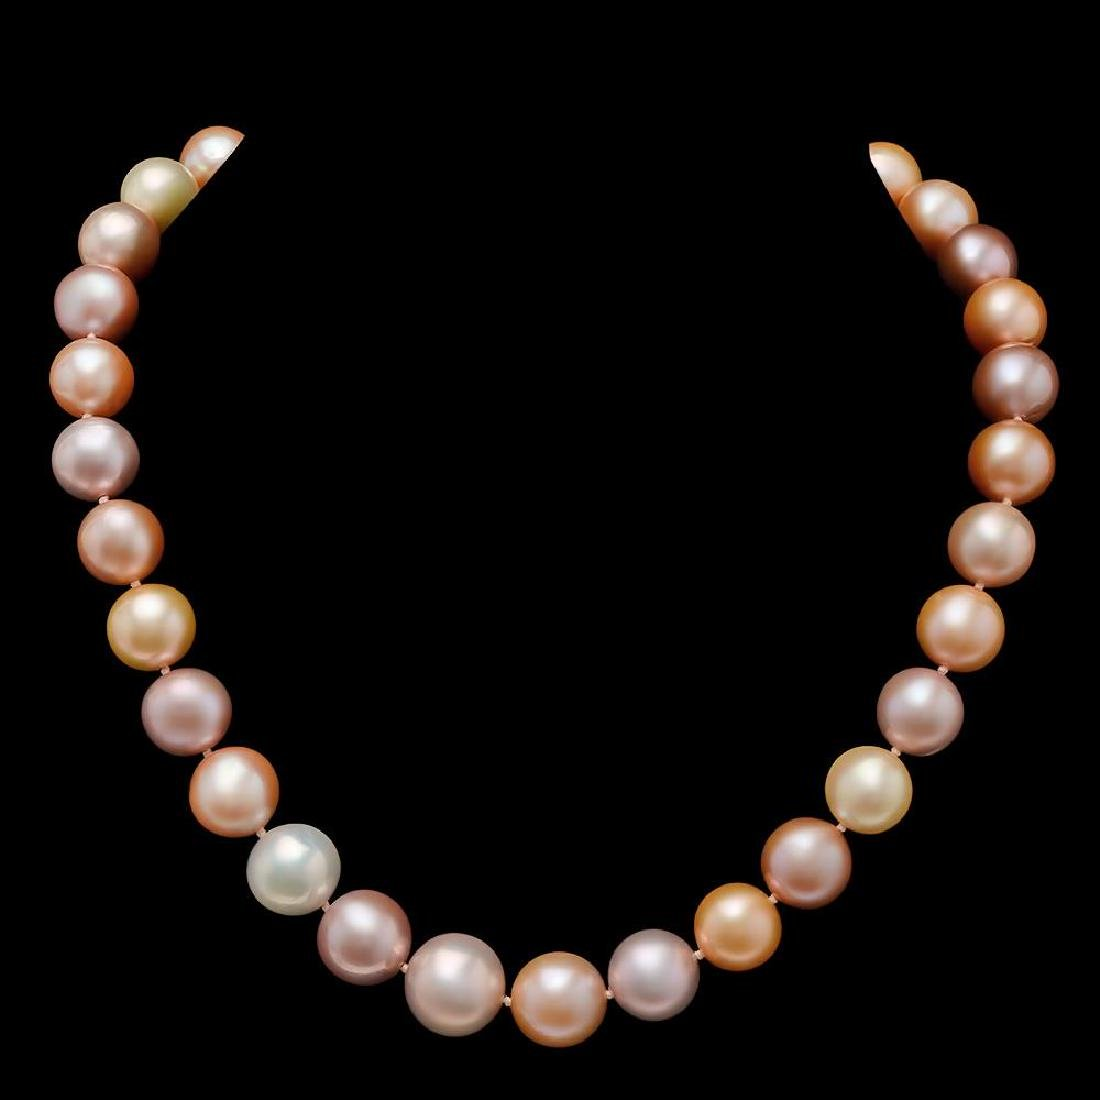 12-15mm Natural South Sea Pearl Necklace - 2